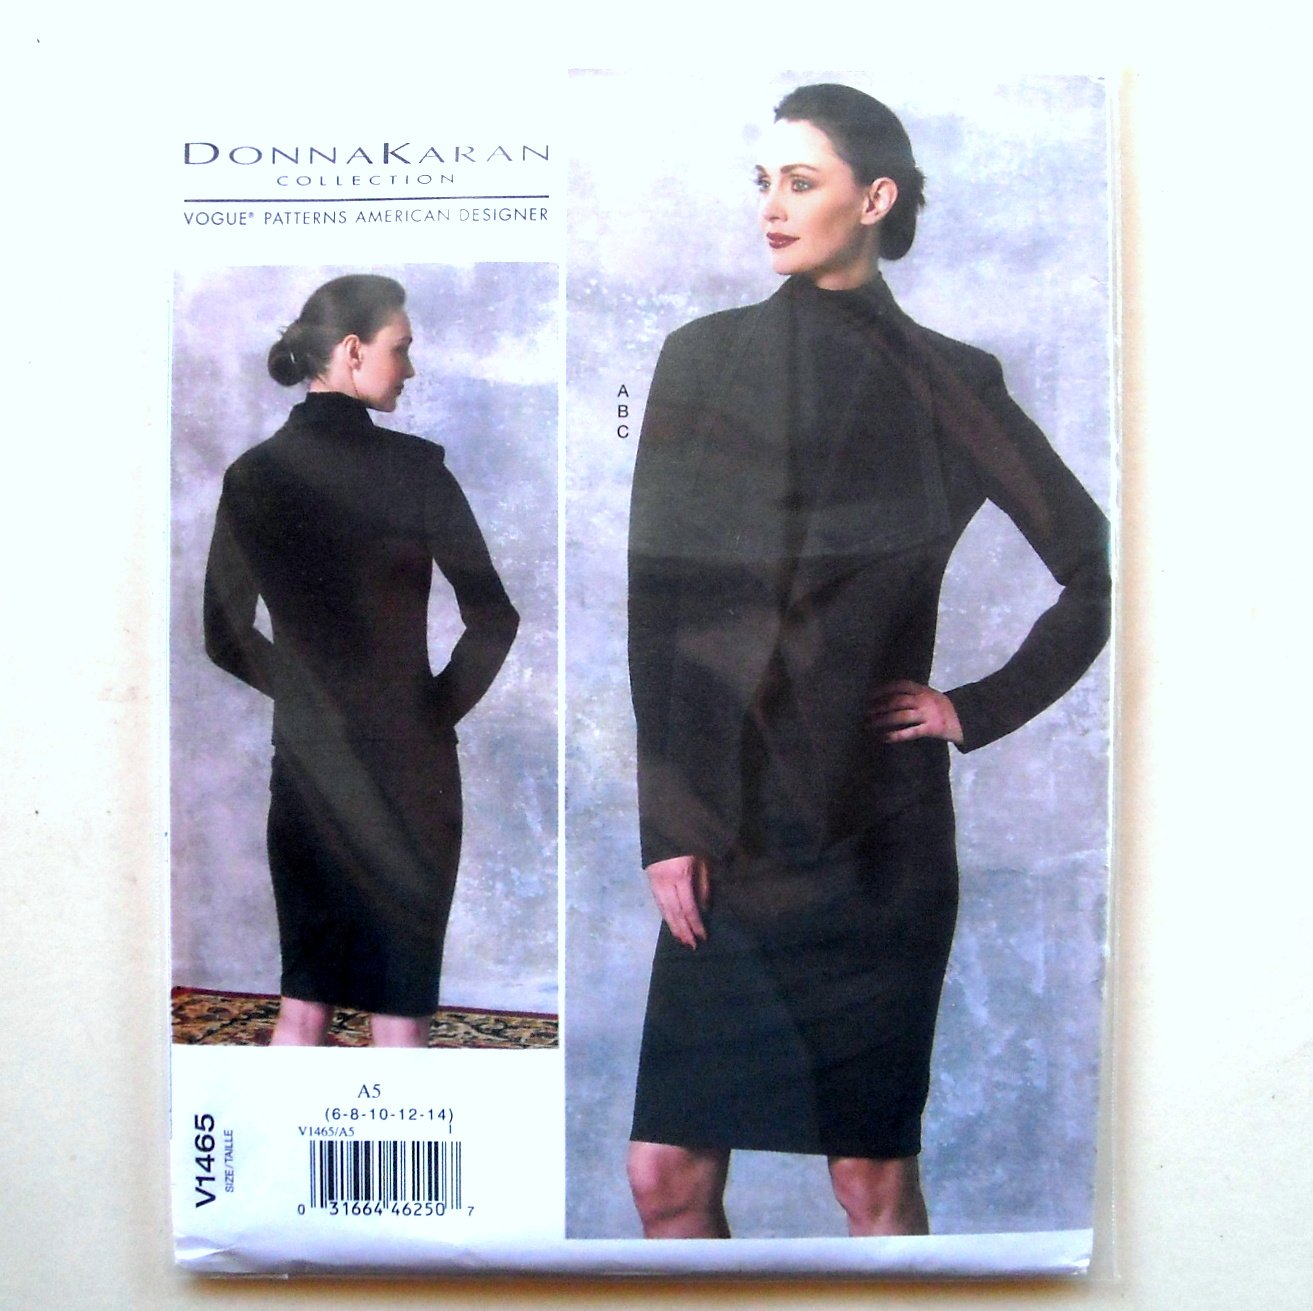 Skirt Top Jacket 6 - 14 Donna Karan Vogue Designer Sewing Pattern V1465